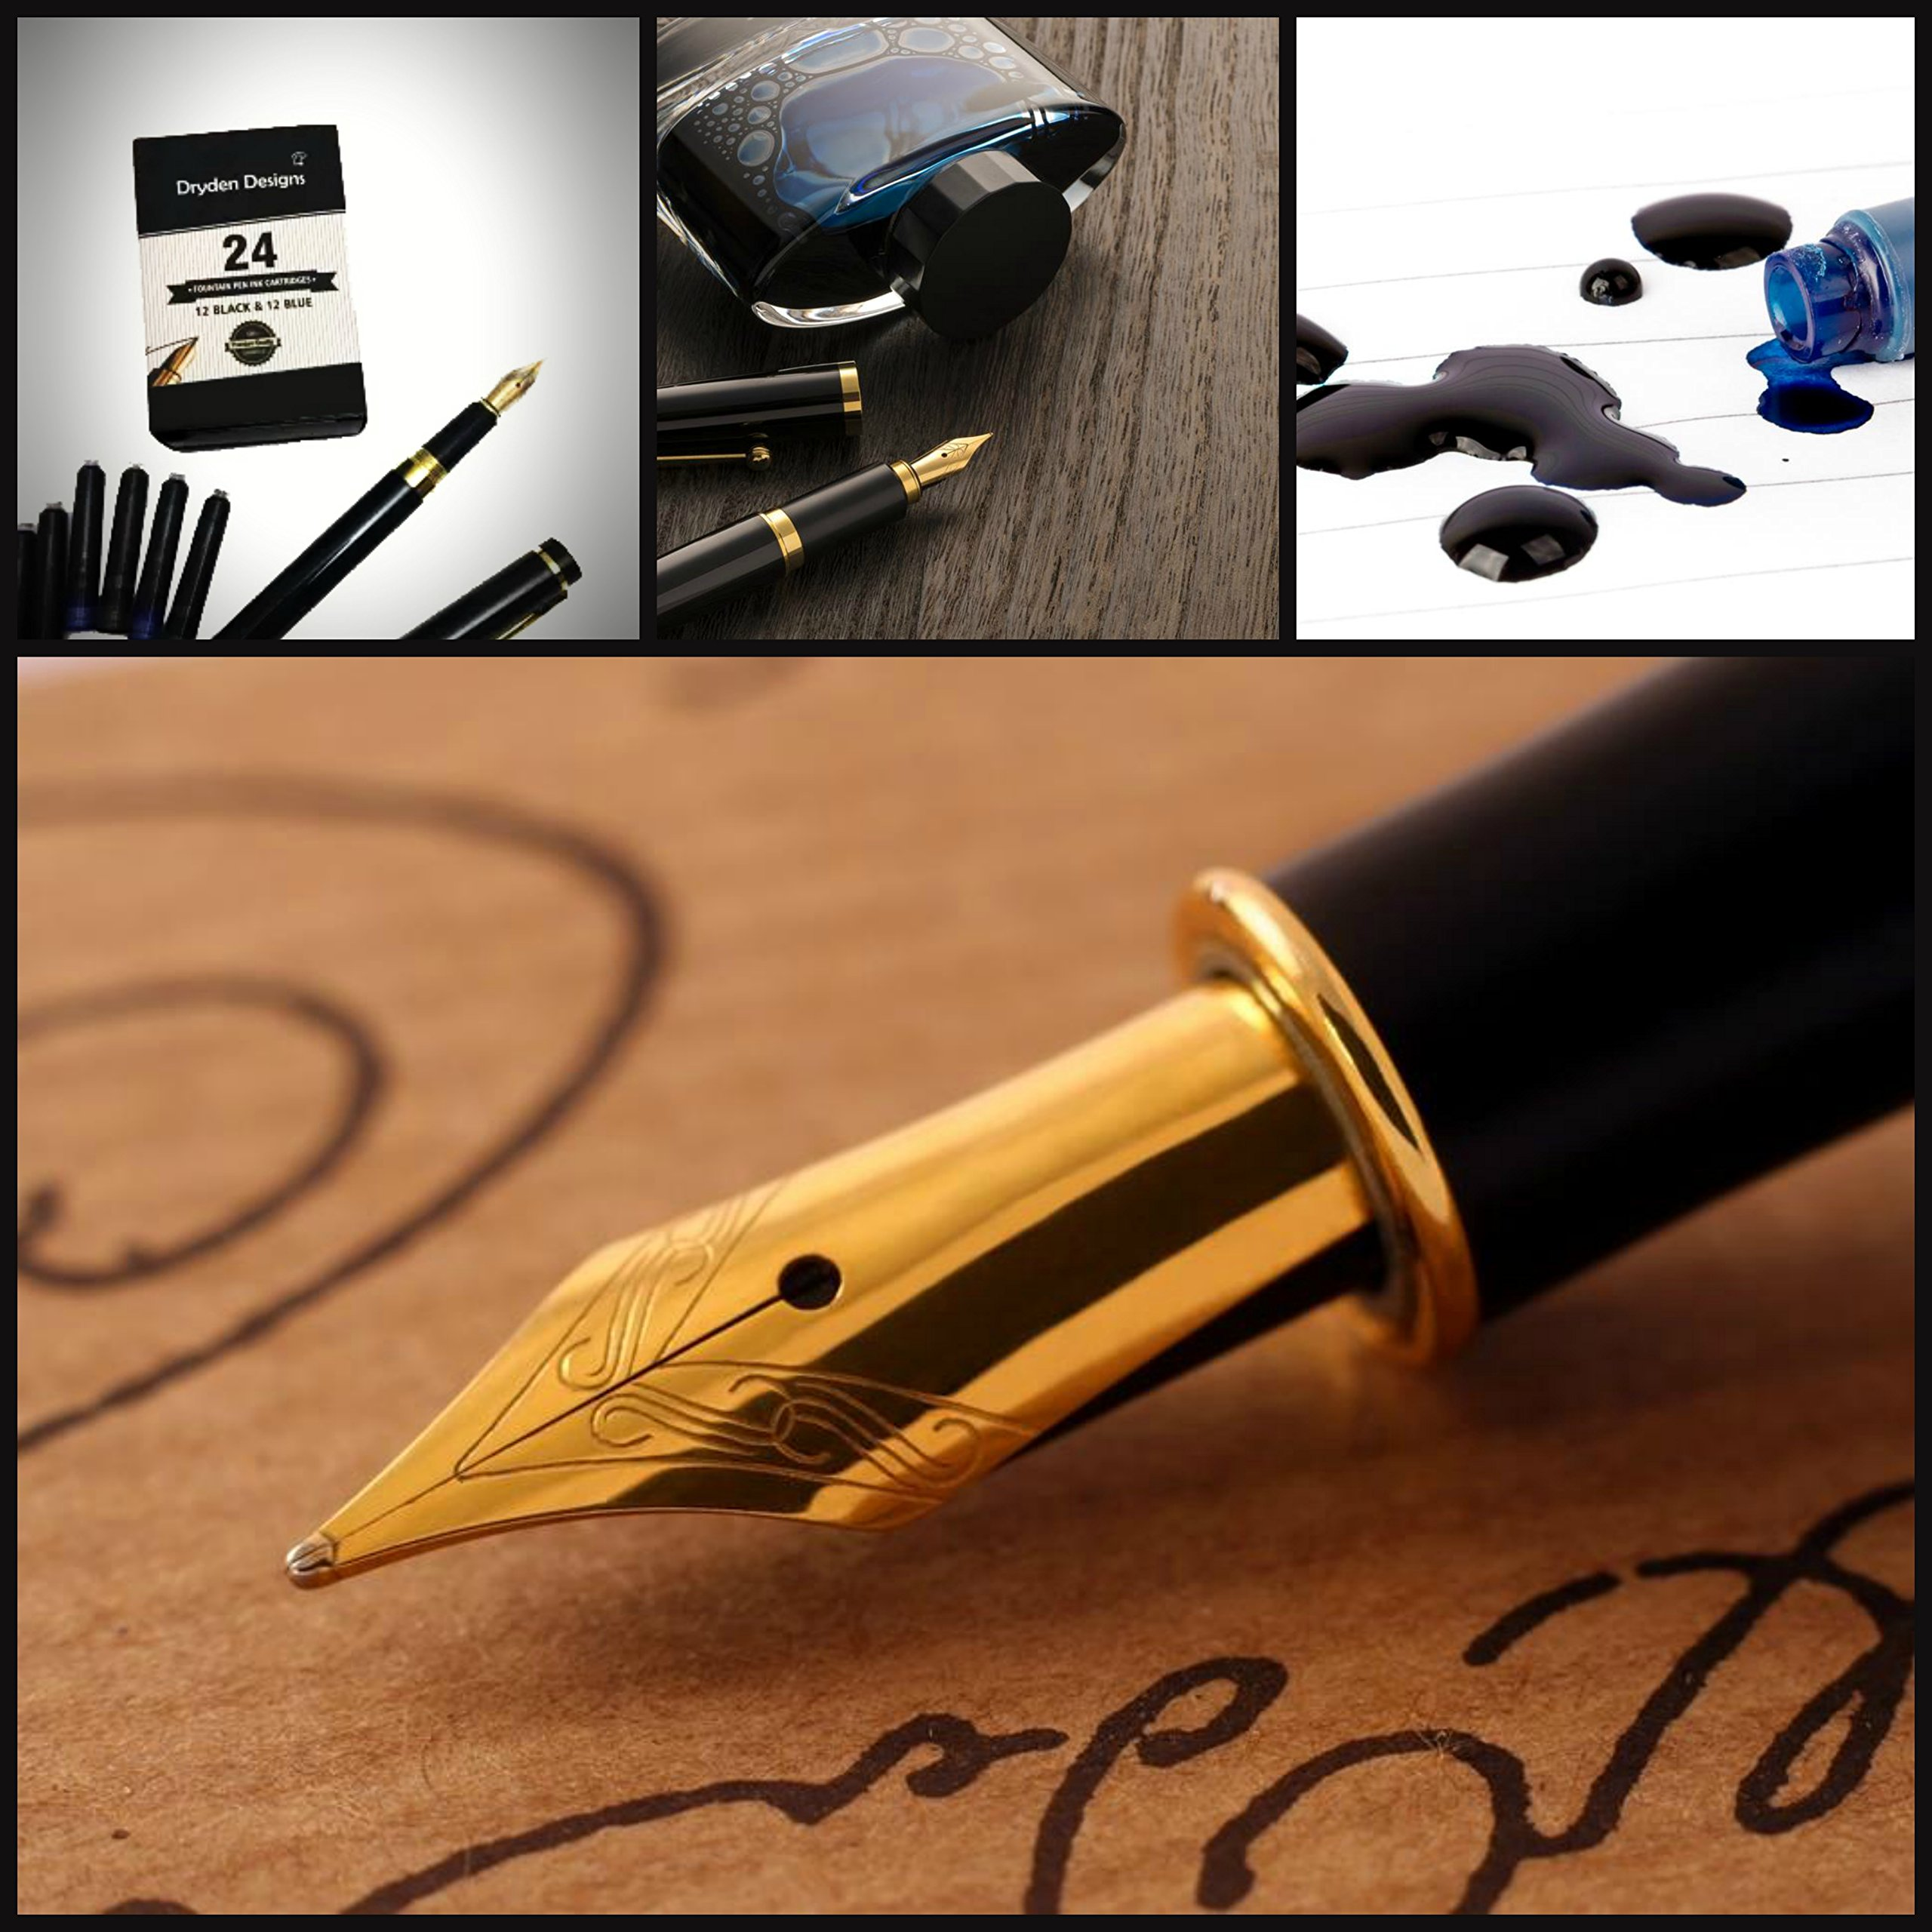 Dryden Fountain Pen Ink Cartridges ✮ SET OF 24: 12 BLACK & 12 BLUE ✮ Short International Standard Size ✮ Disposable and Generic Ink Refill Cartridges ✮ Perfect for Calligraphy by Dryden Designs (Image #2)